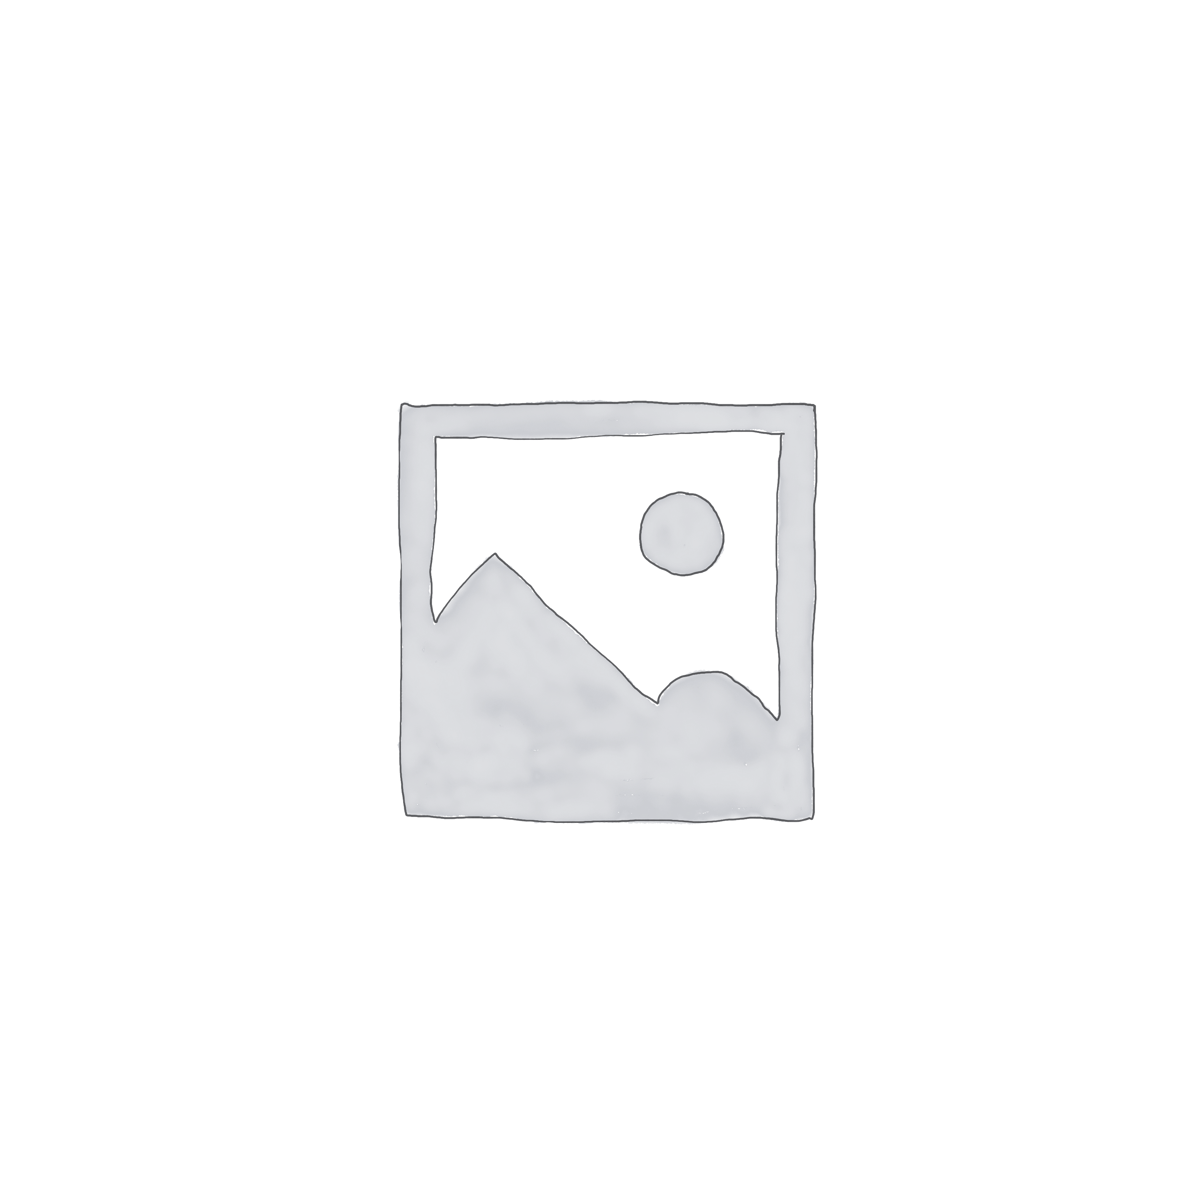 Truck Docks and Access Platforms